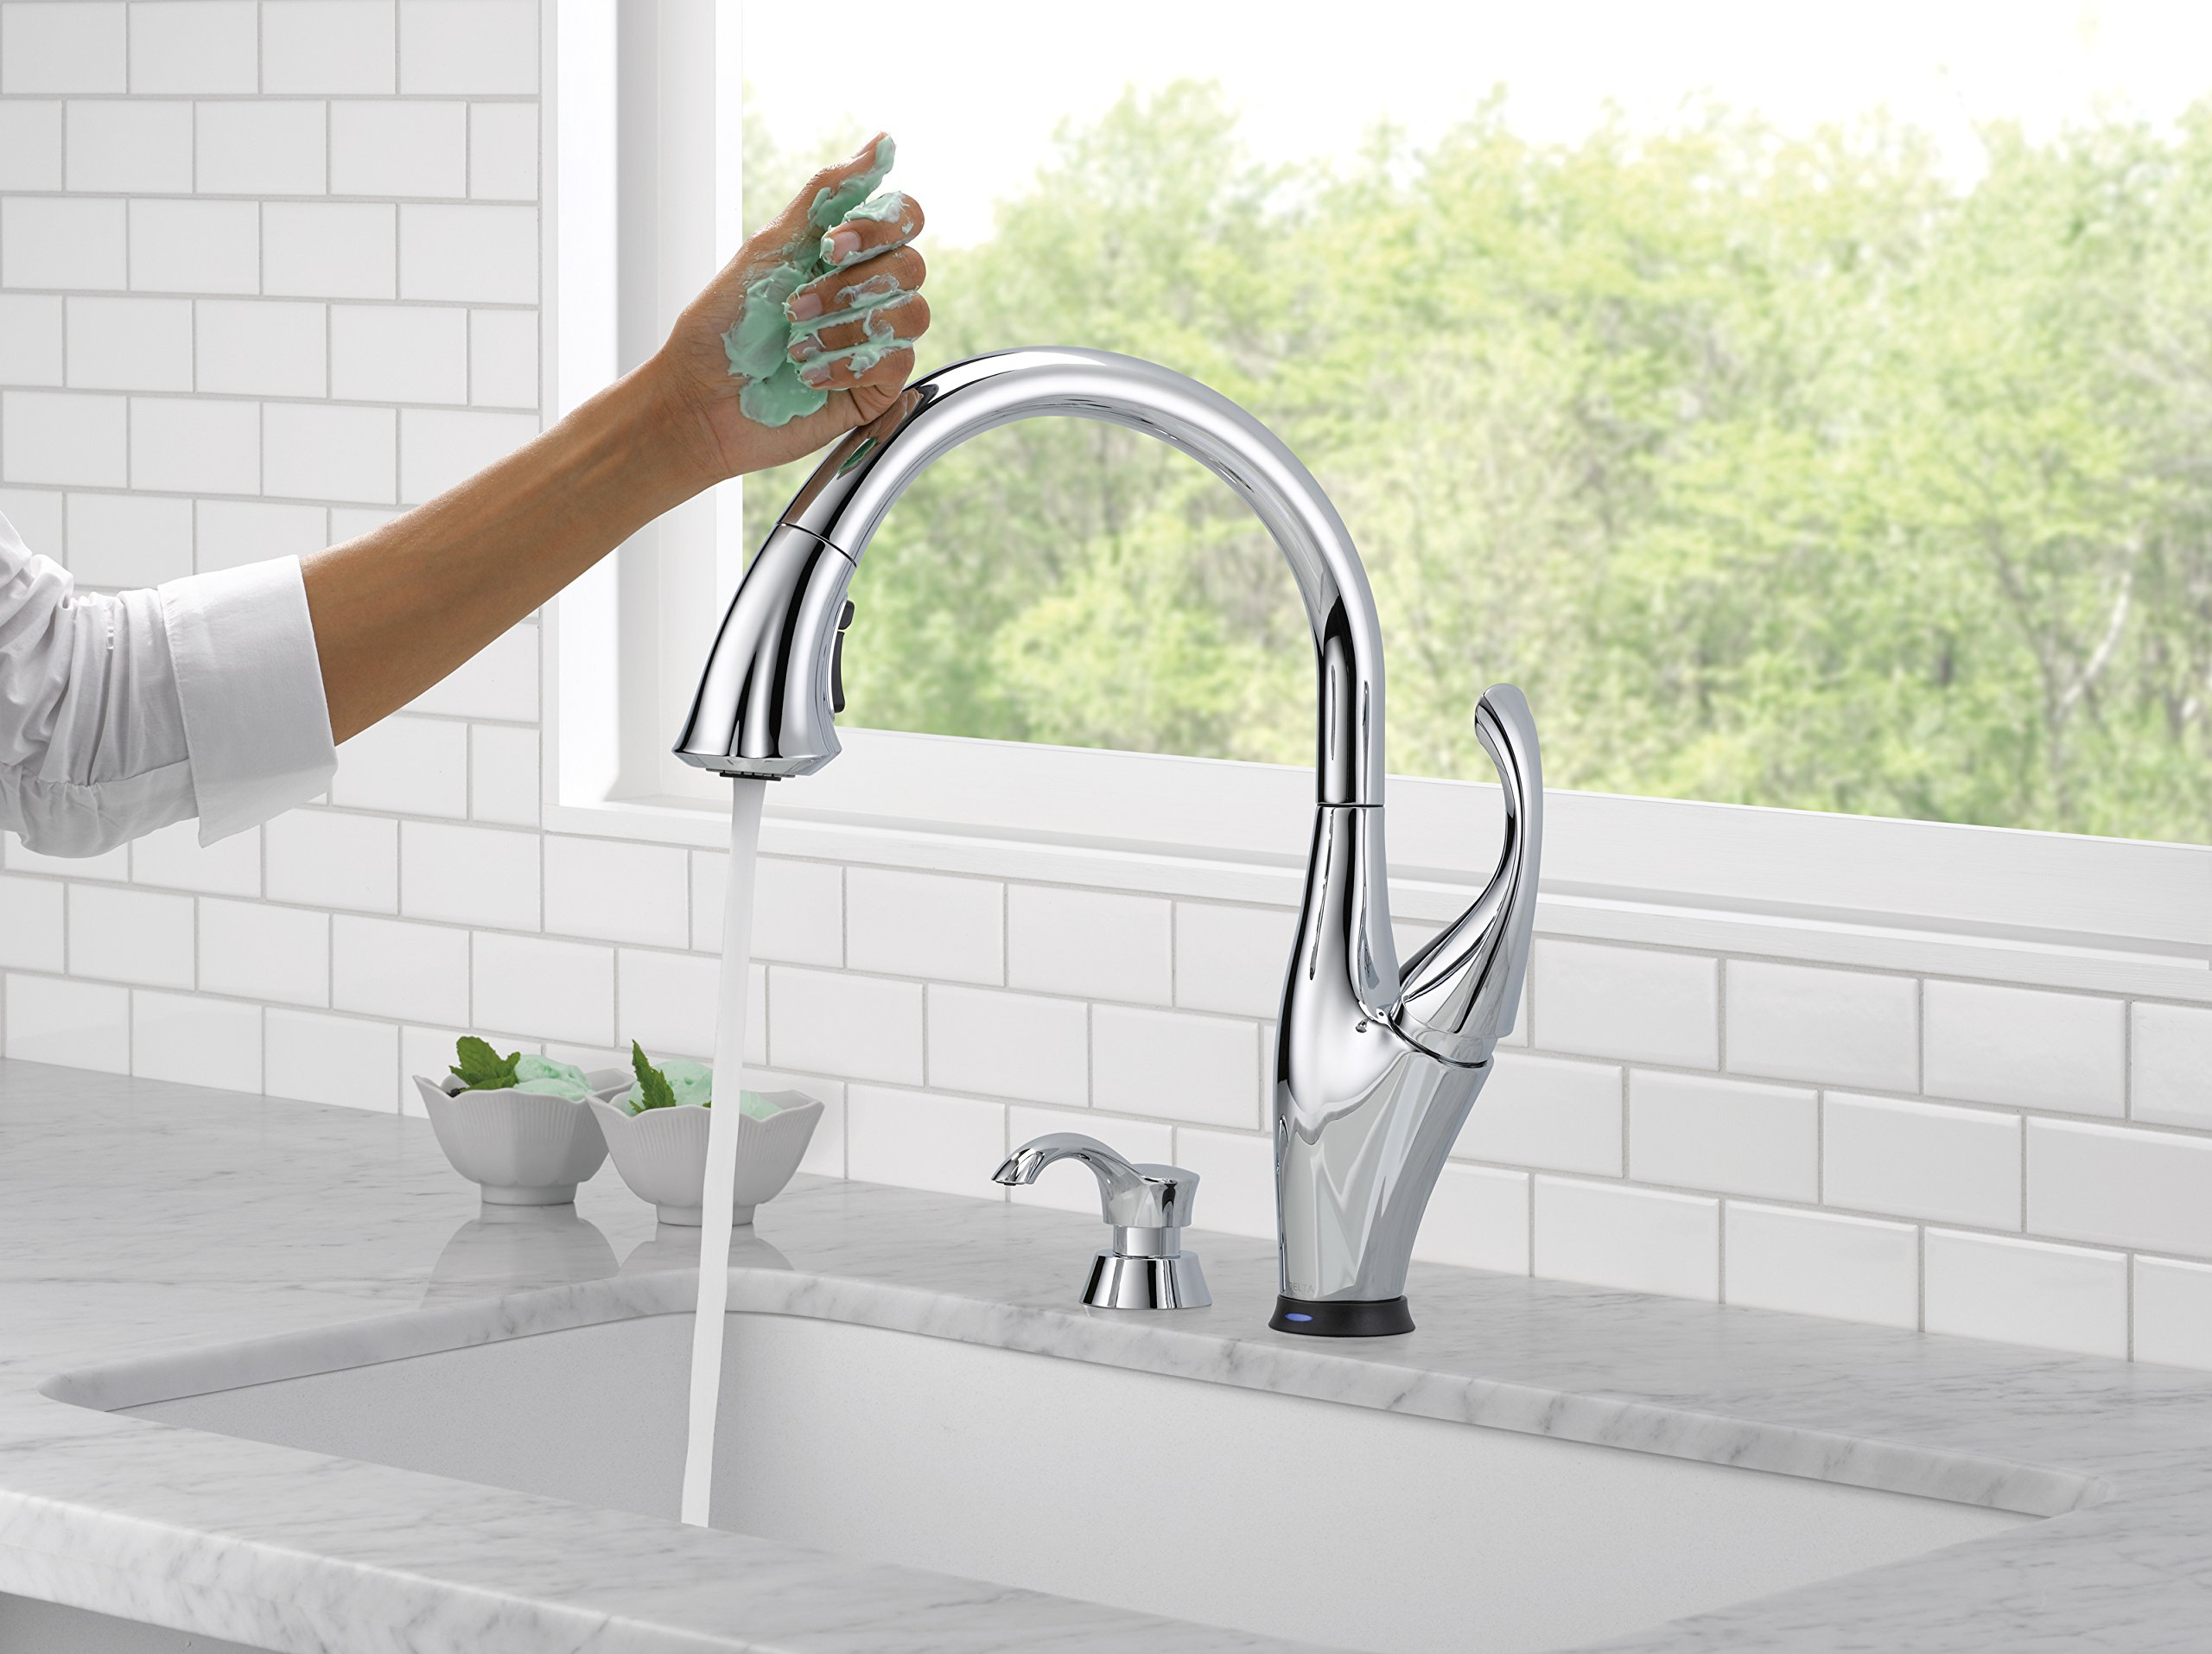 Delta Faucet 9192T-SD-DST Addison Single Handle Pull-Down Kitchen Faucet with Touch2O Technology and Soap Dispenser, Chrome by DELTA FAUCET (Image #2)